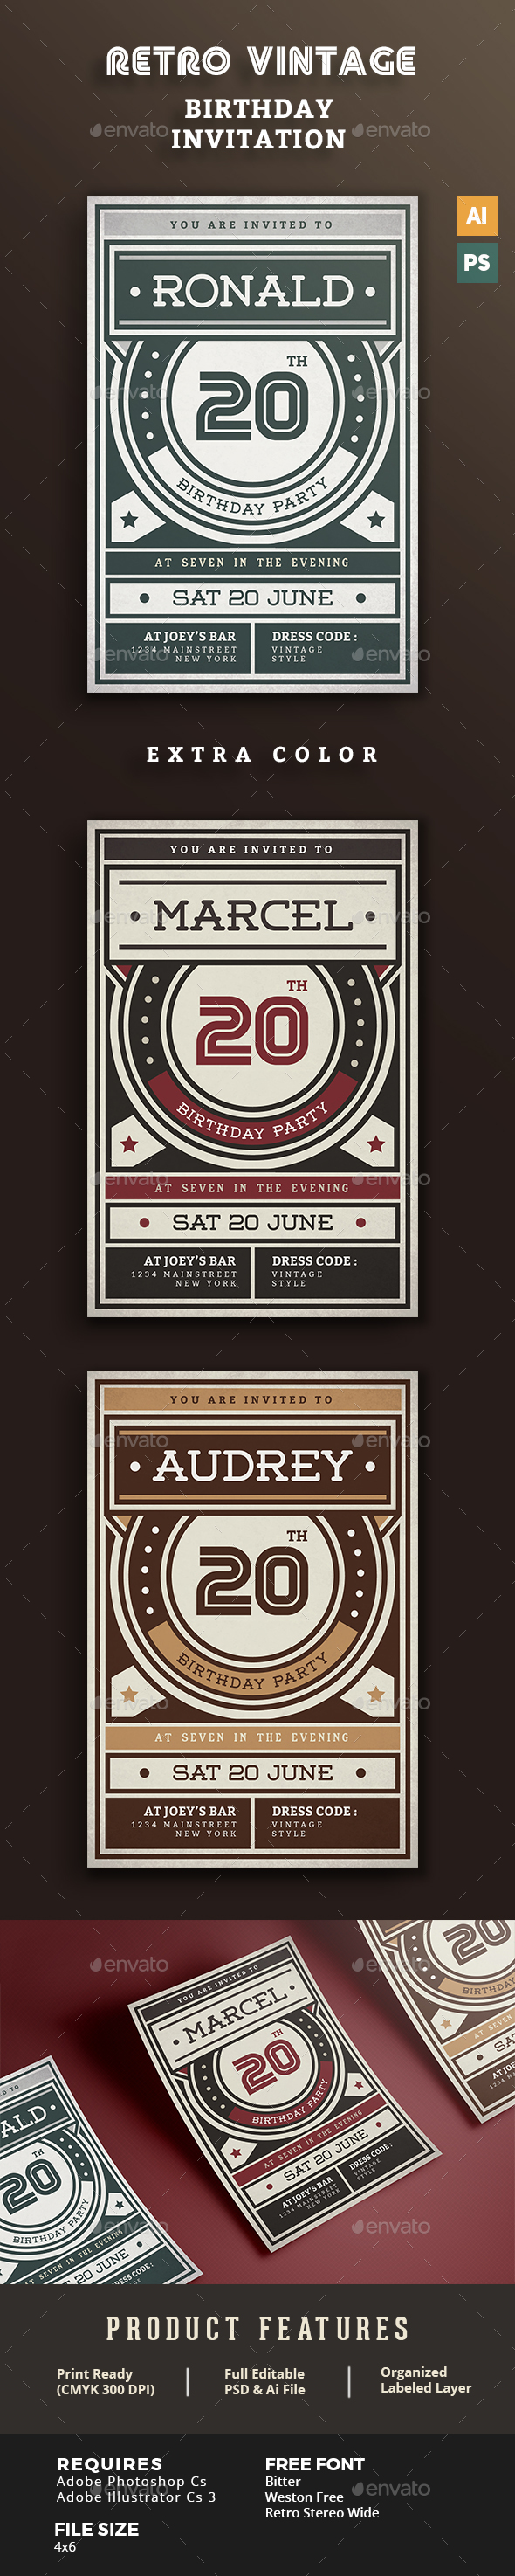 Birthday Retro/Vintage Invitation - Birthday Greeting Cards